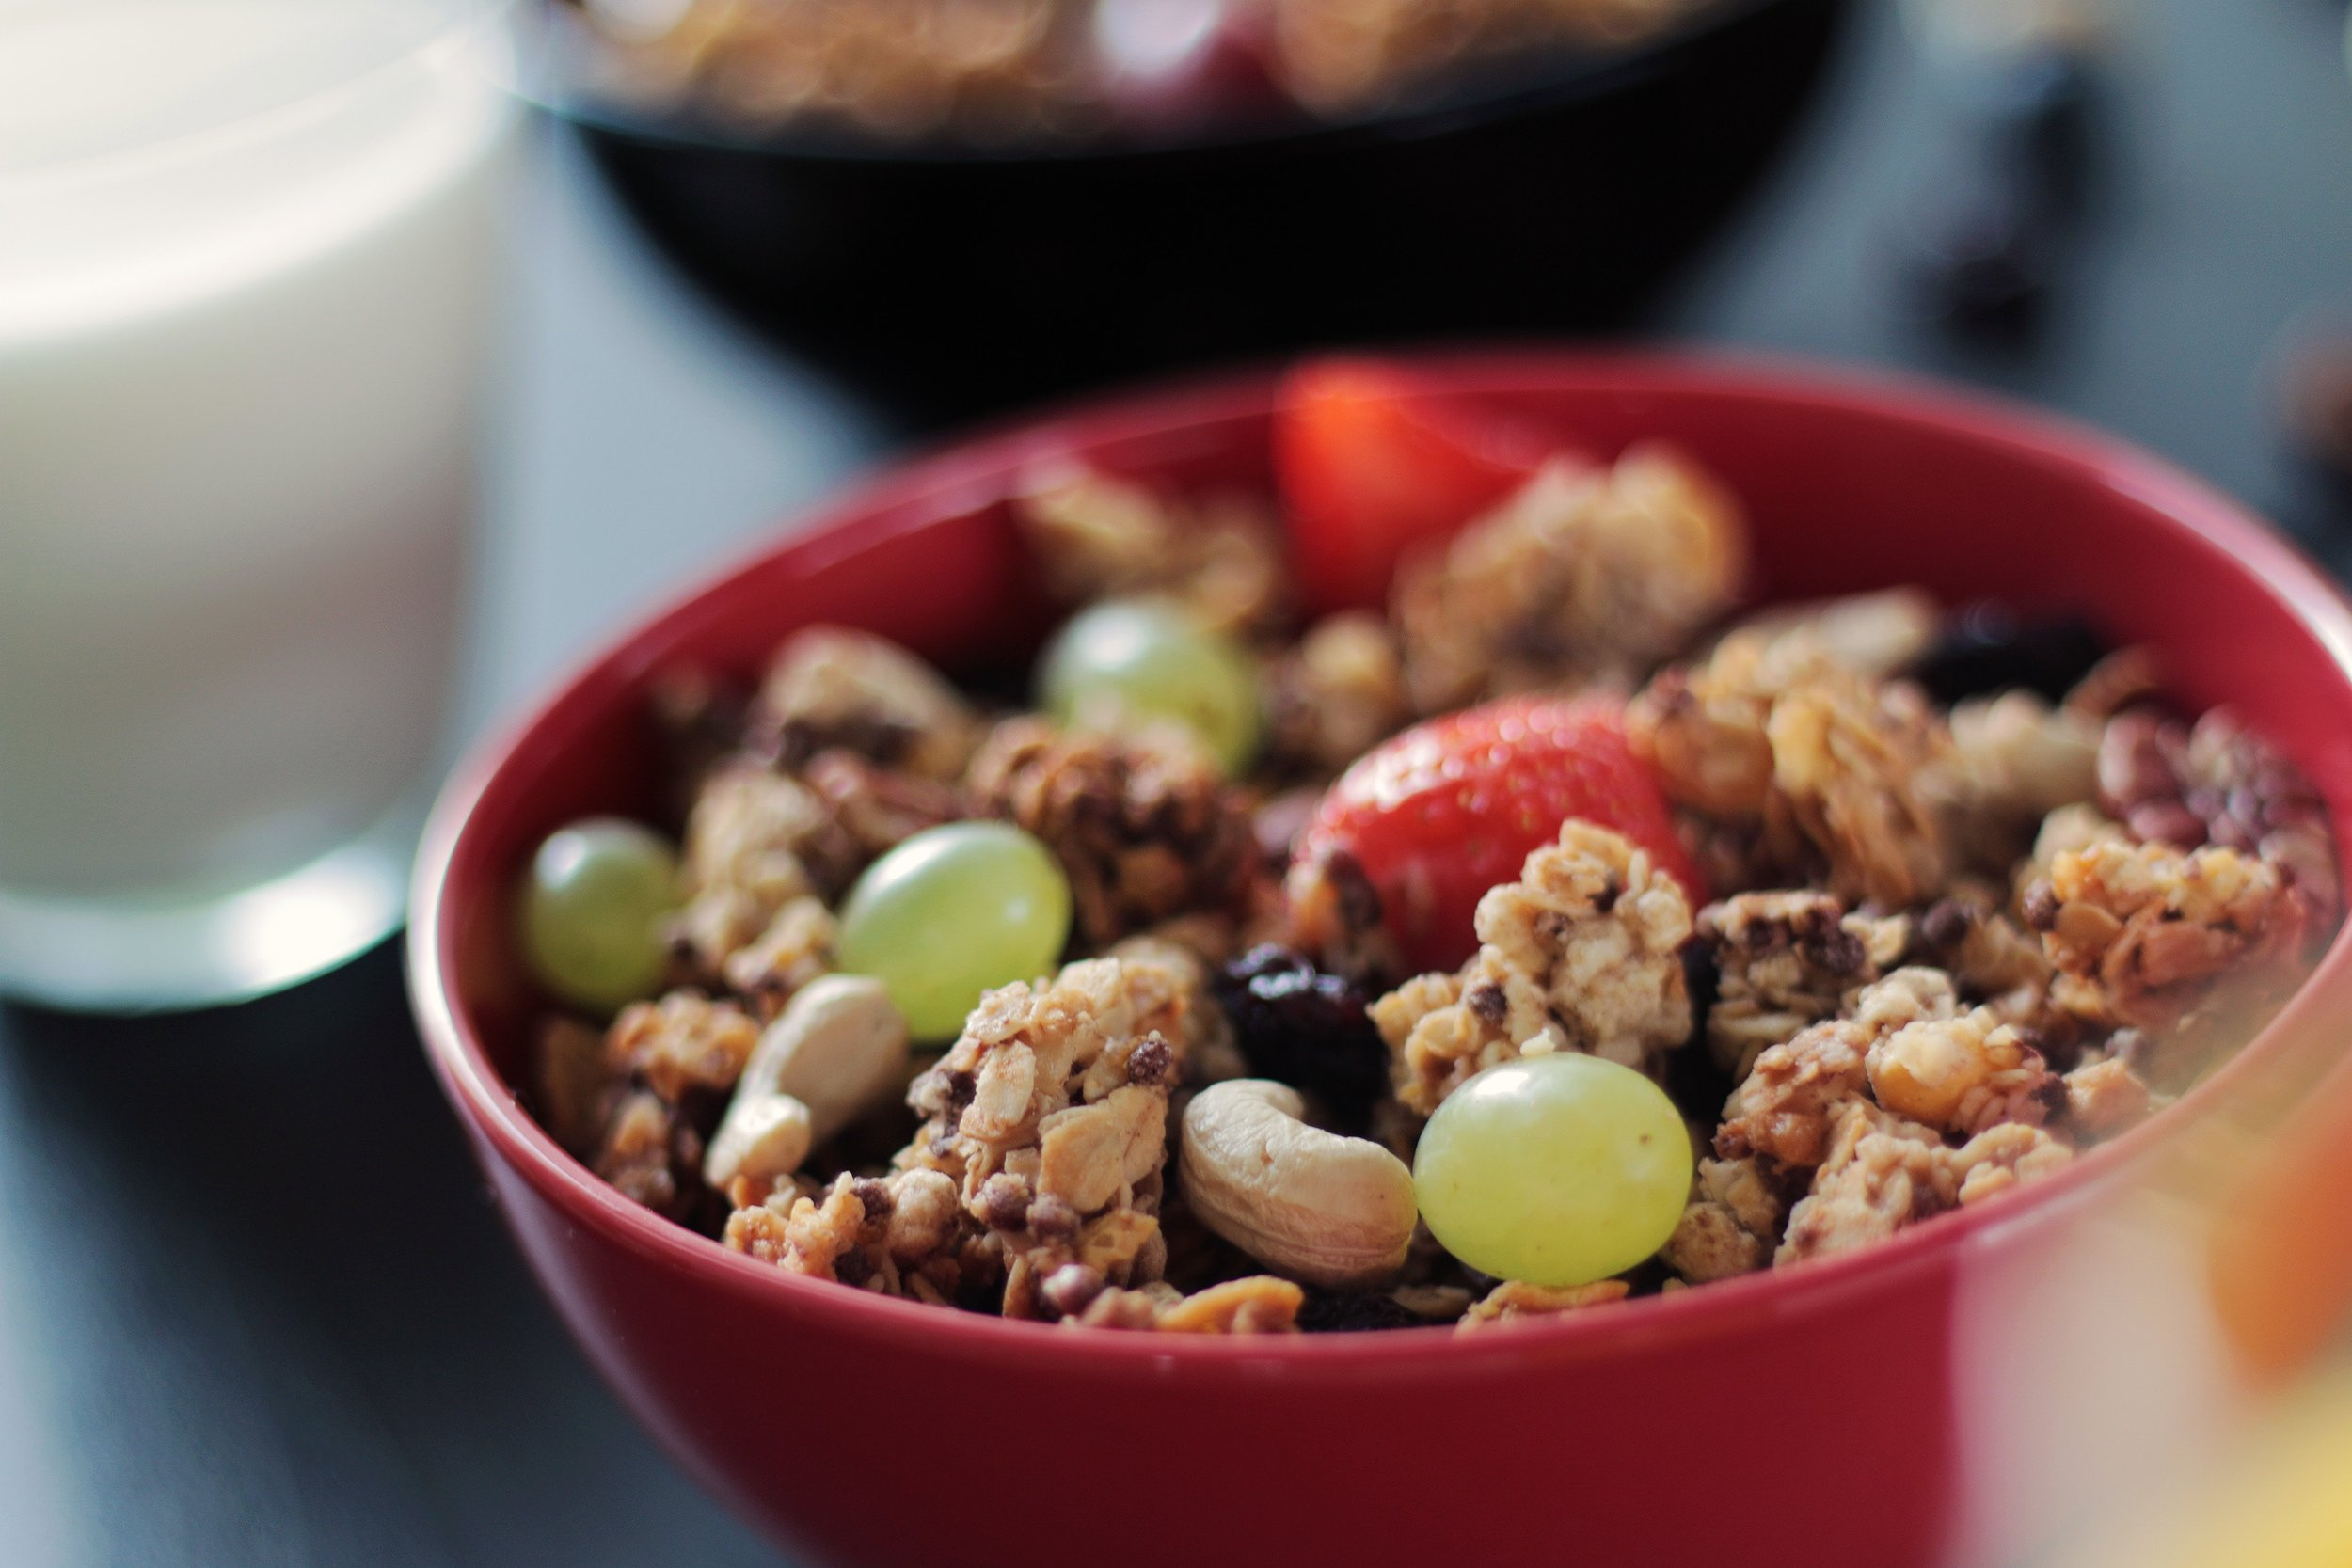 breakfast-cereals-food-3672.jpg